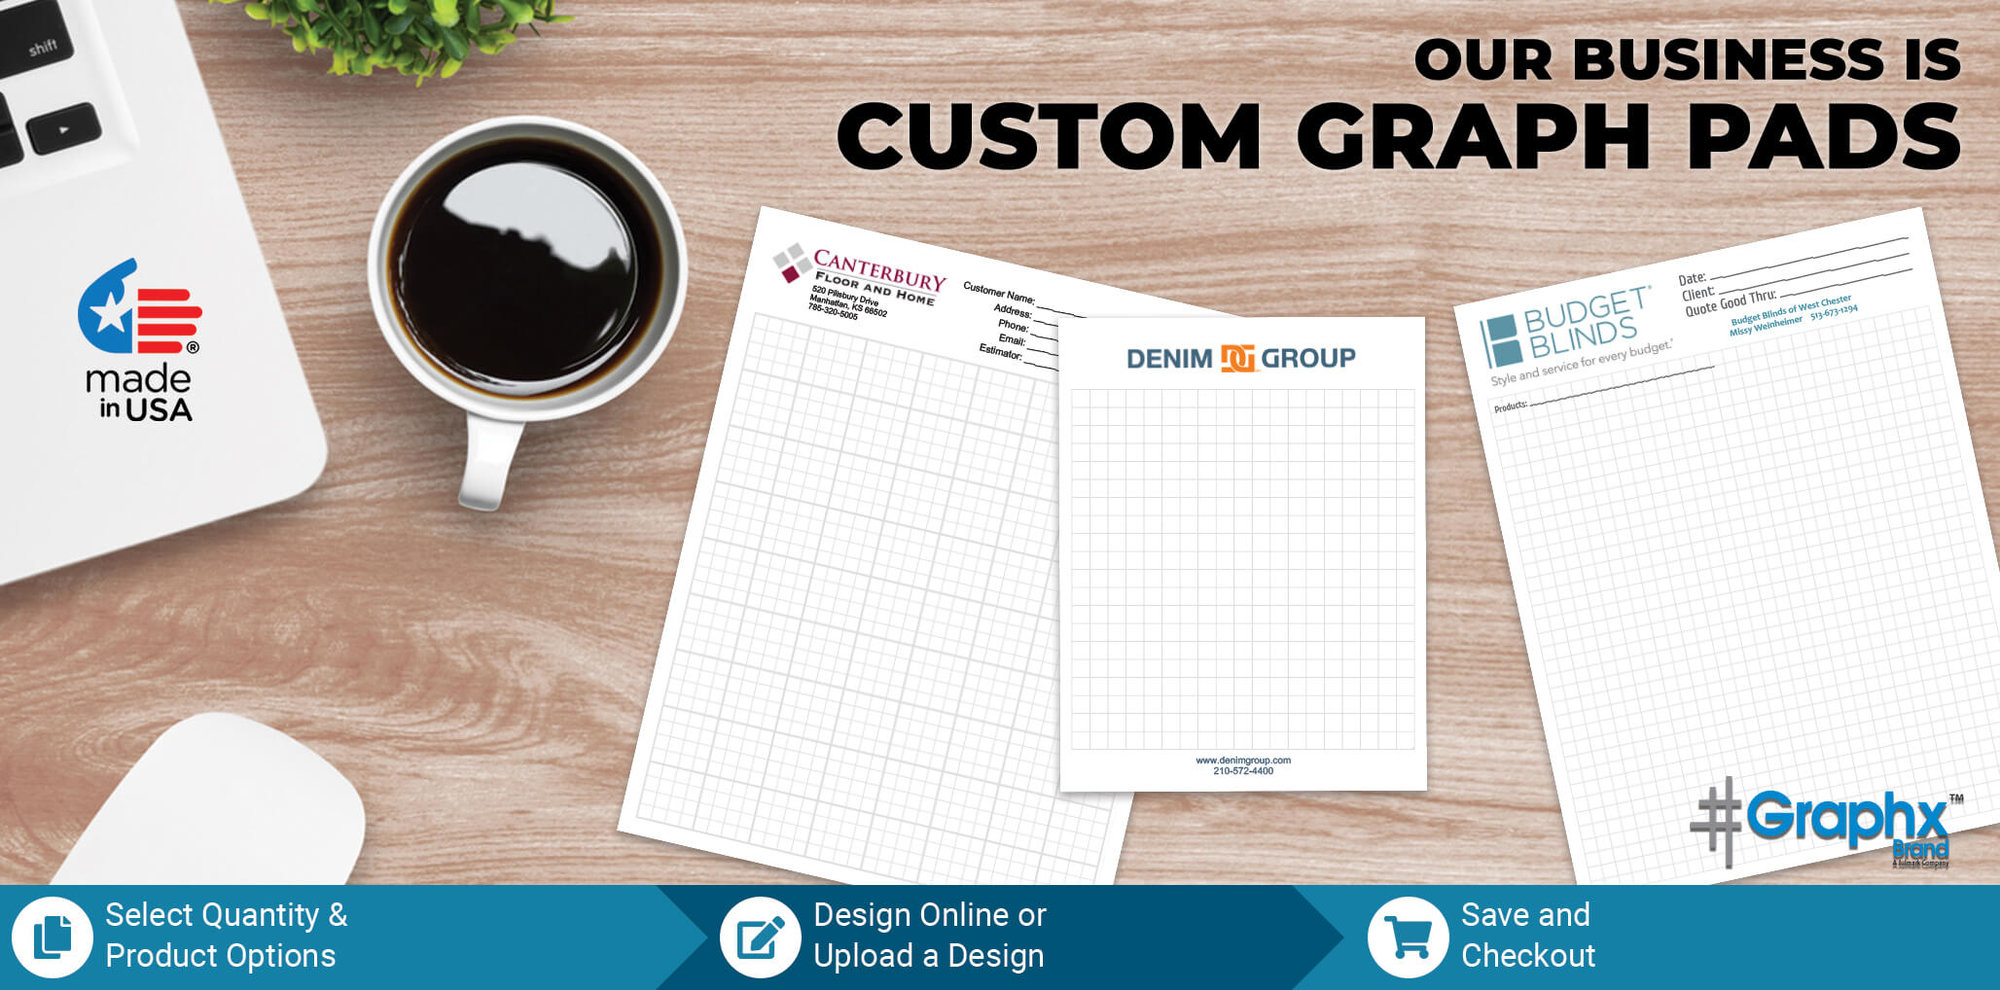 https://printpps.com/images/products_gallery_images/Graph-Pads_Product-Page-Banner_1_58.jpg